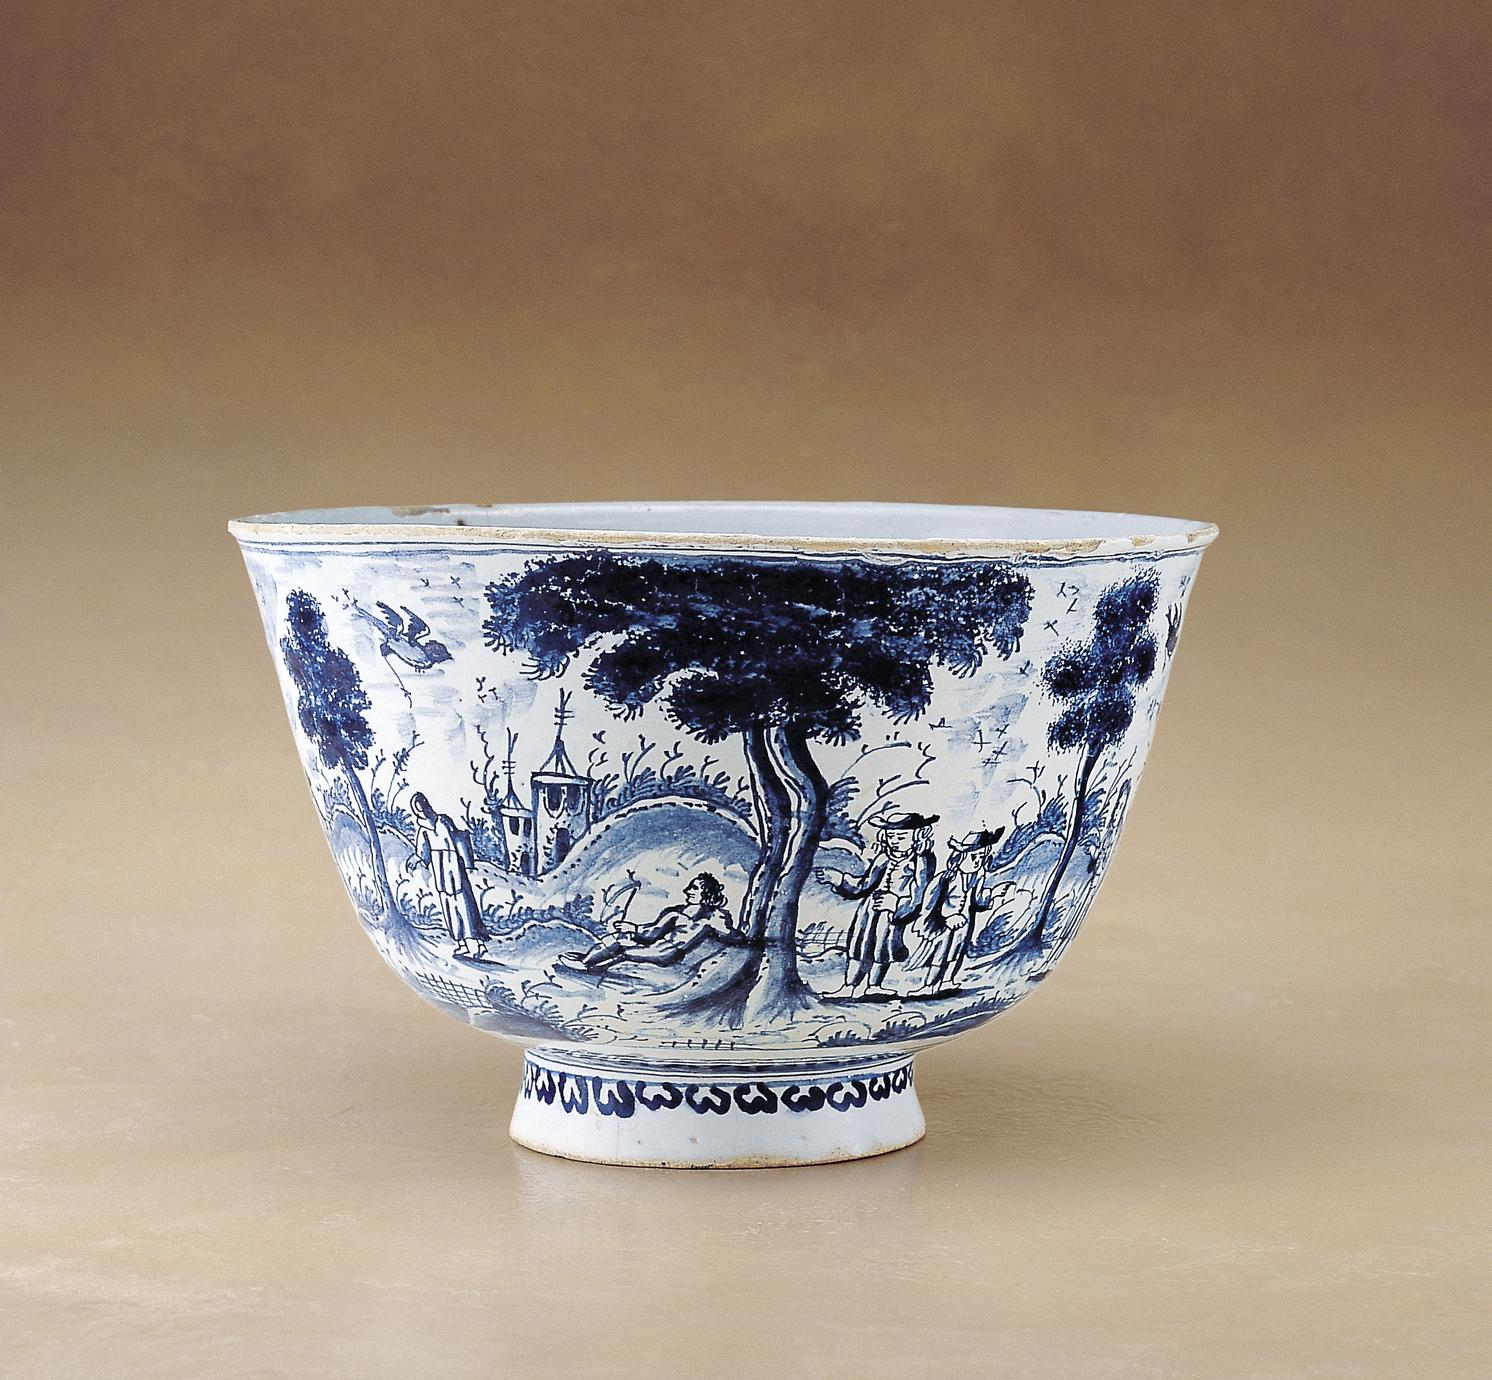 Punch bowl (1 of 4)